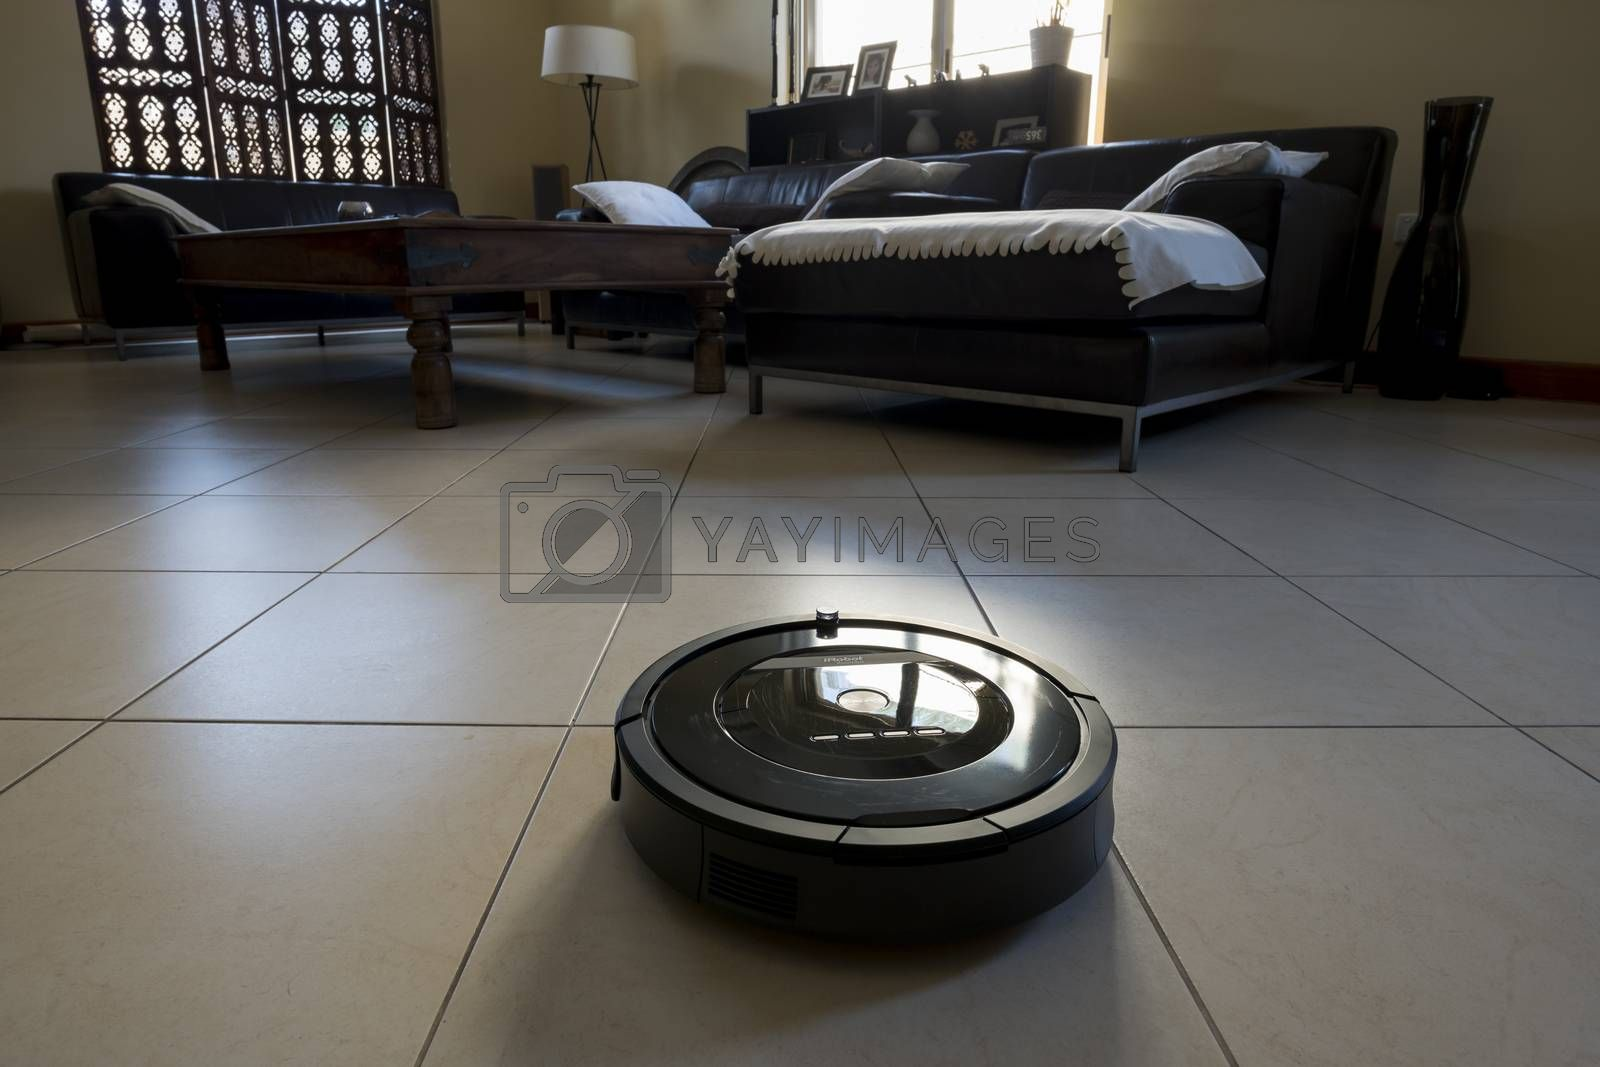 Royalty free image of Roomba iRobot vaccum cleaner in a saloon by GABIS